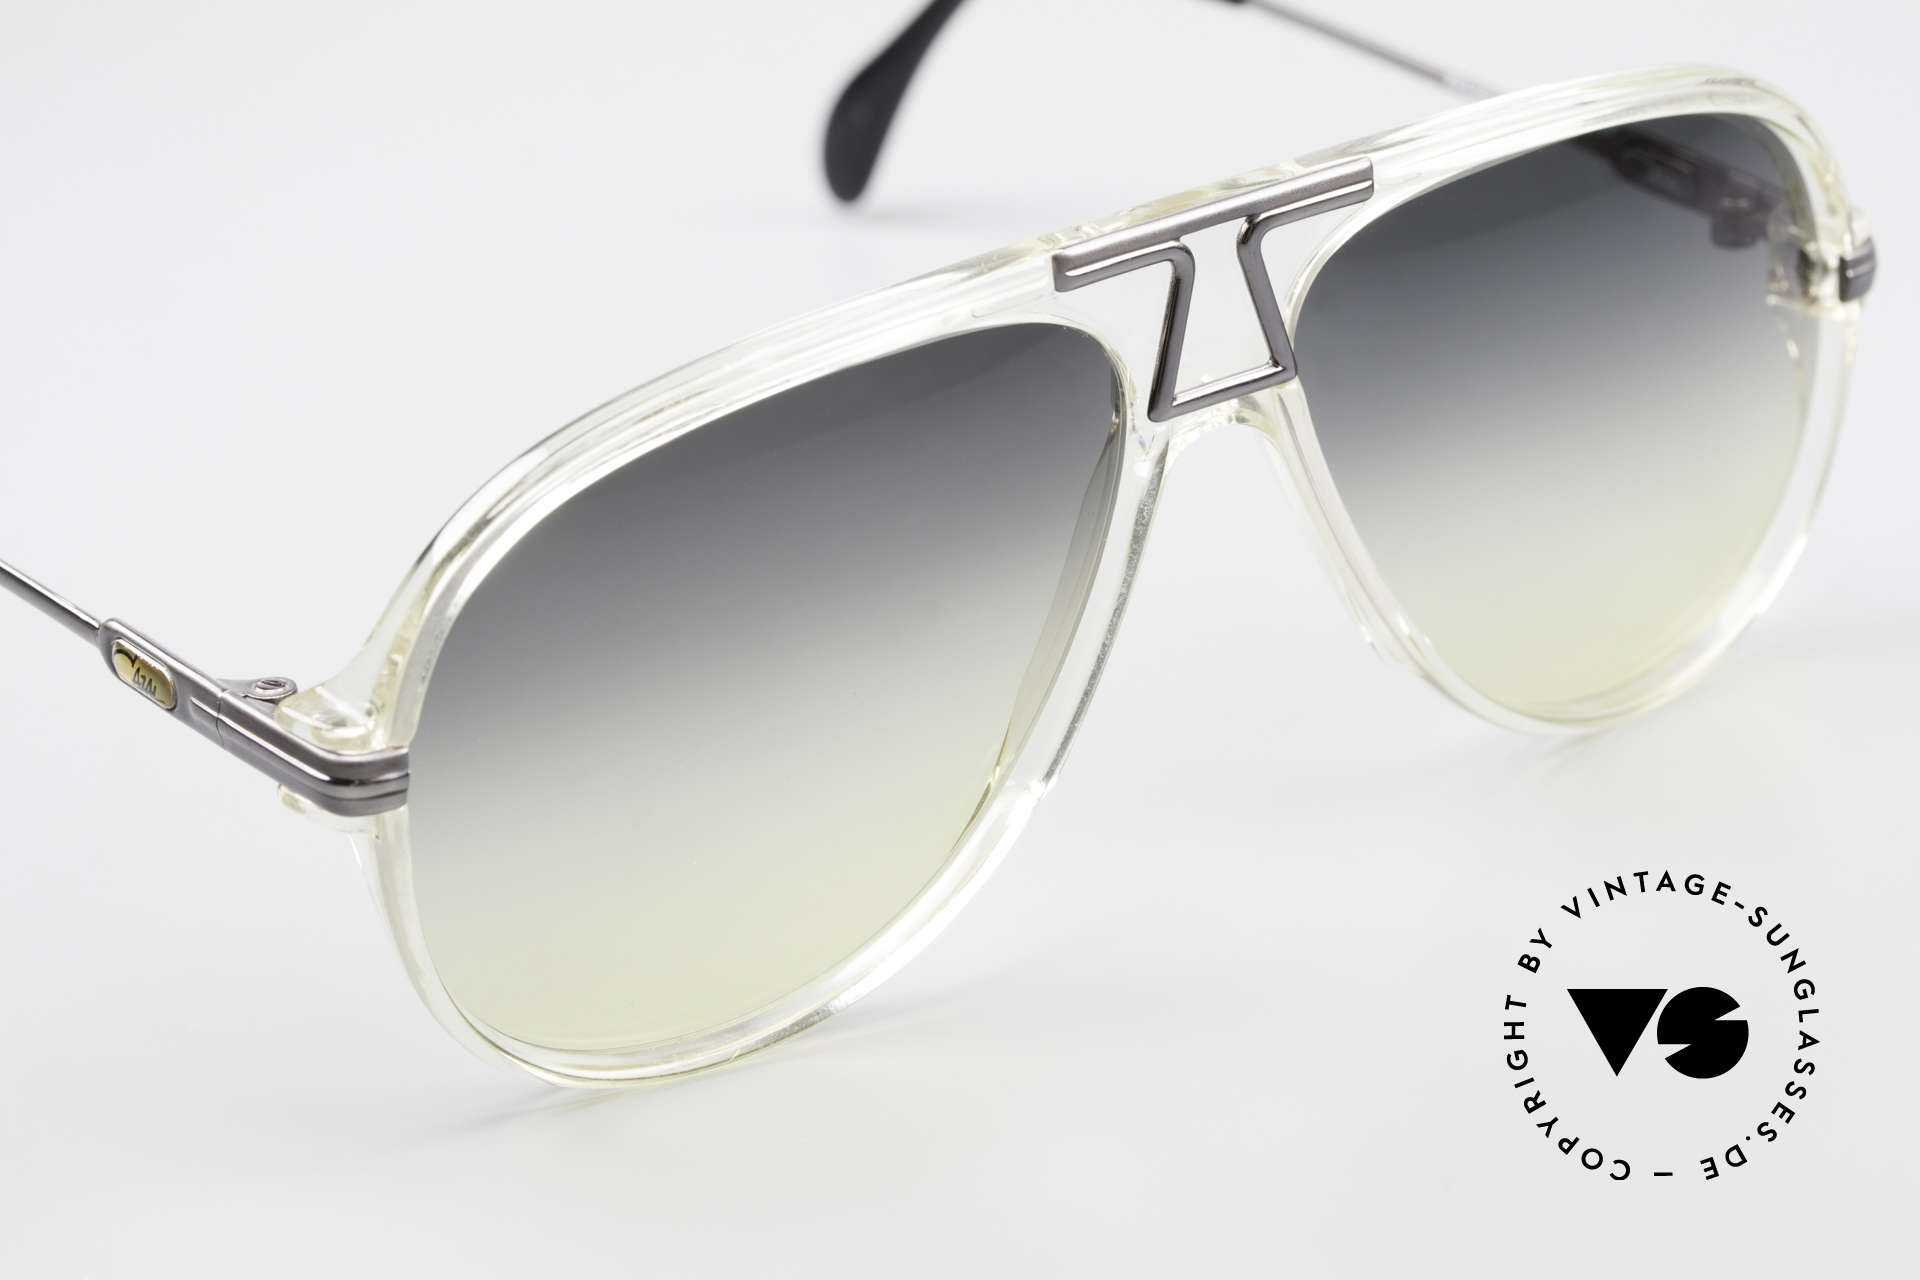 Cazal 622 Old 80's West Germany Cazal, gray/yellow gradient sun lenses; 100% UV protection, Made for Men